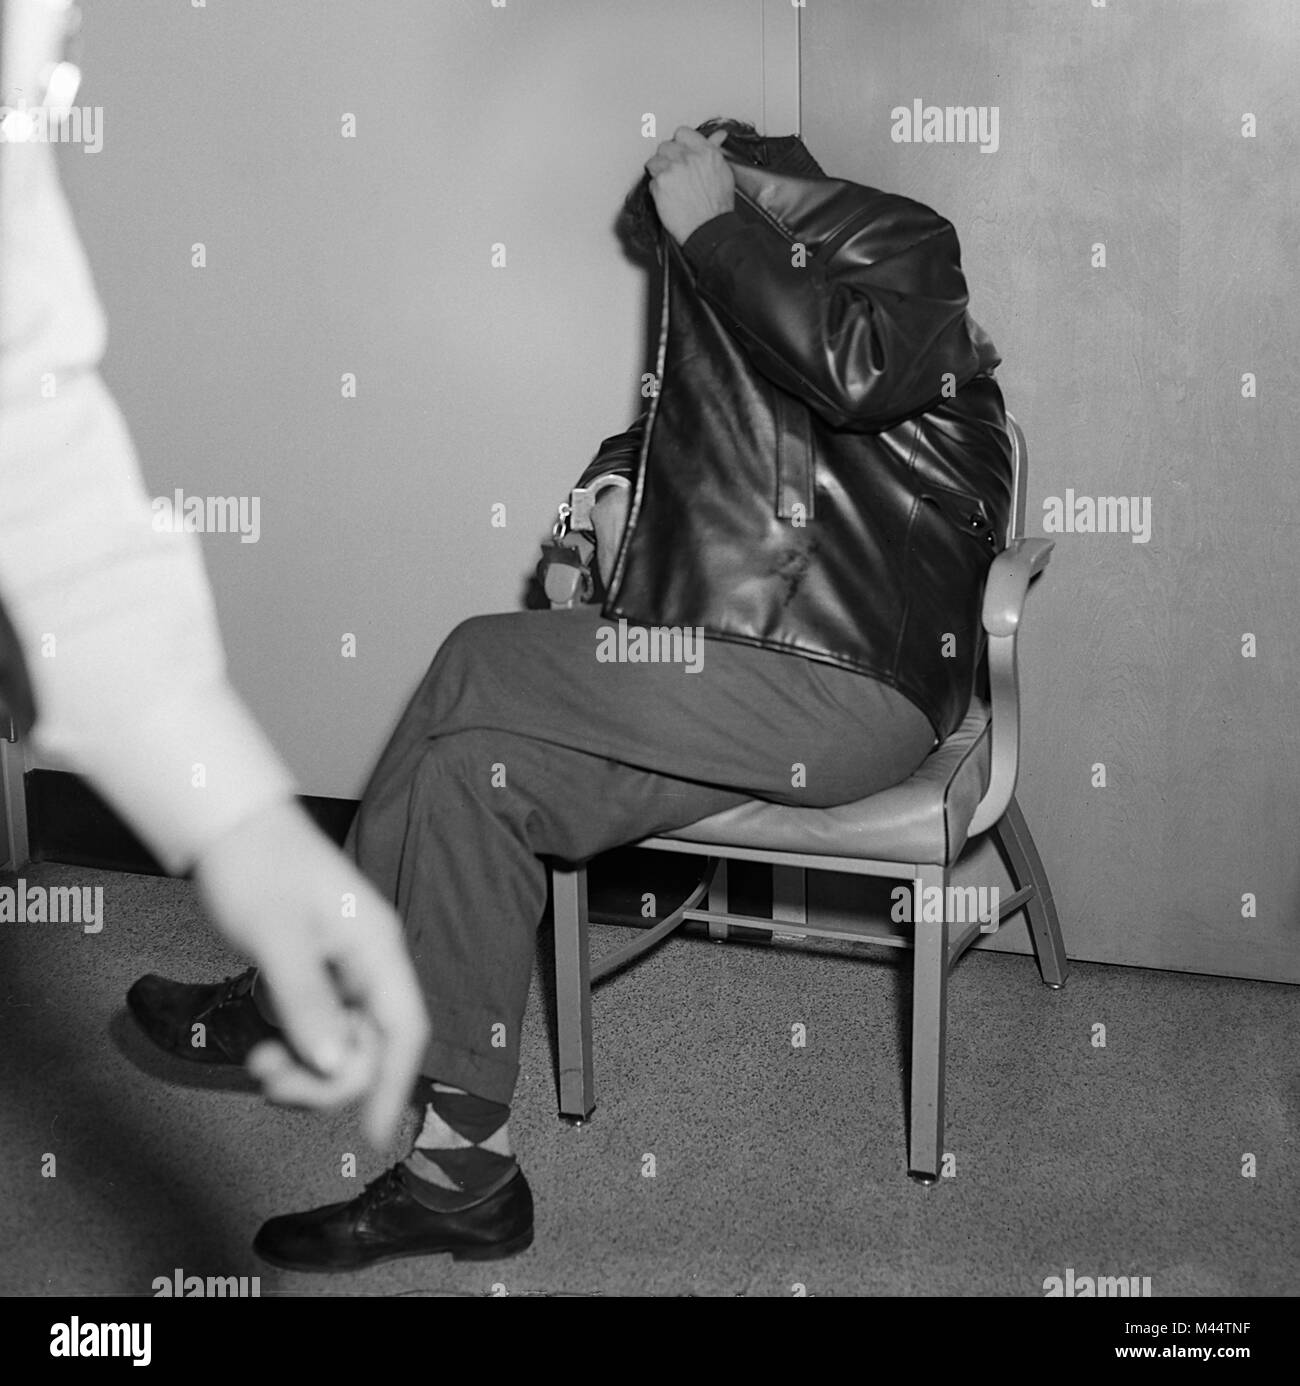 Handcuffed crime suspect covers up and hides from having his photo taken, ca. 1948. - Stock Image